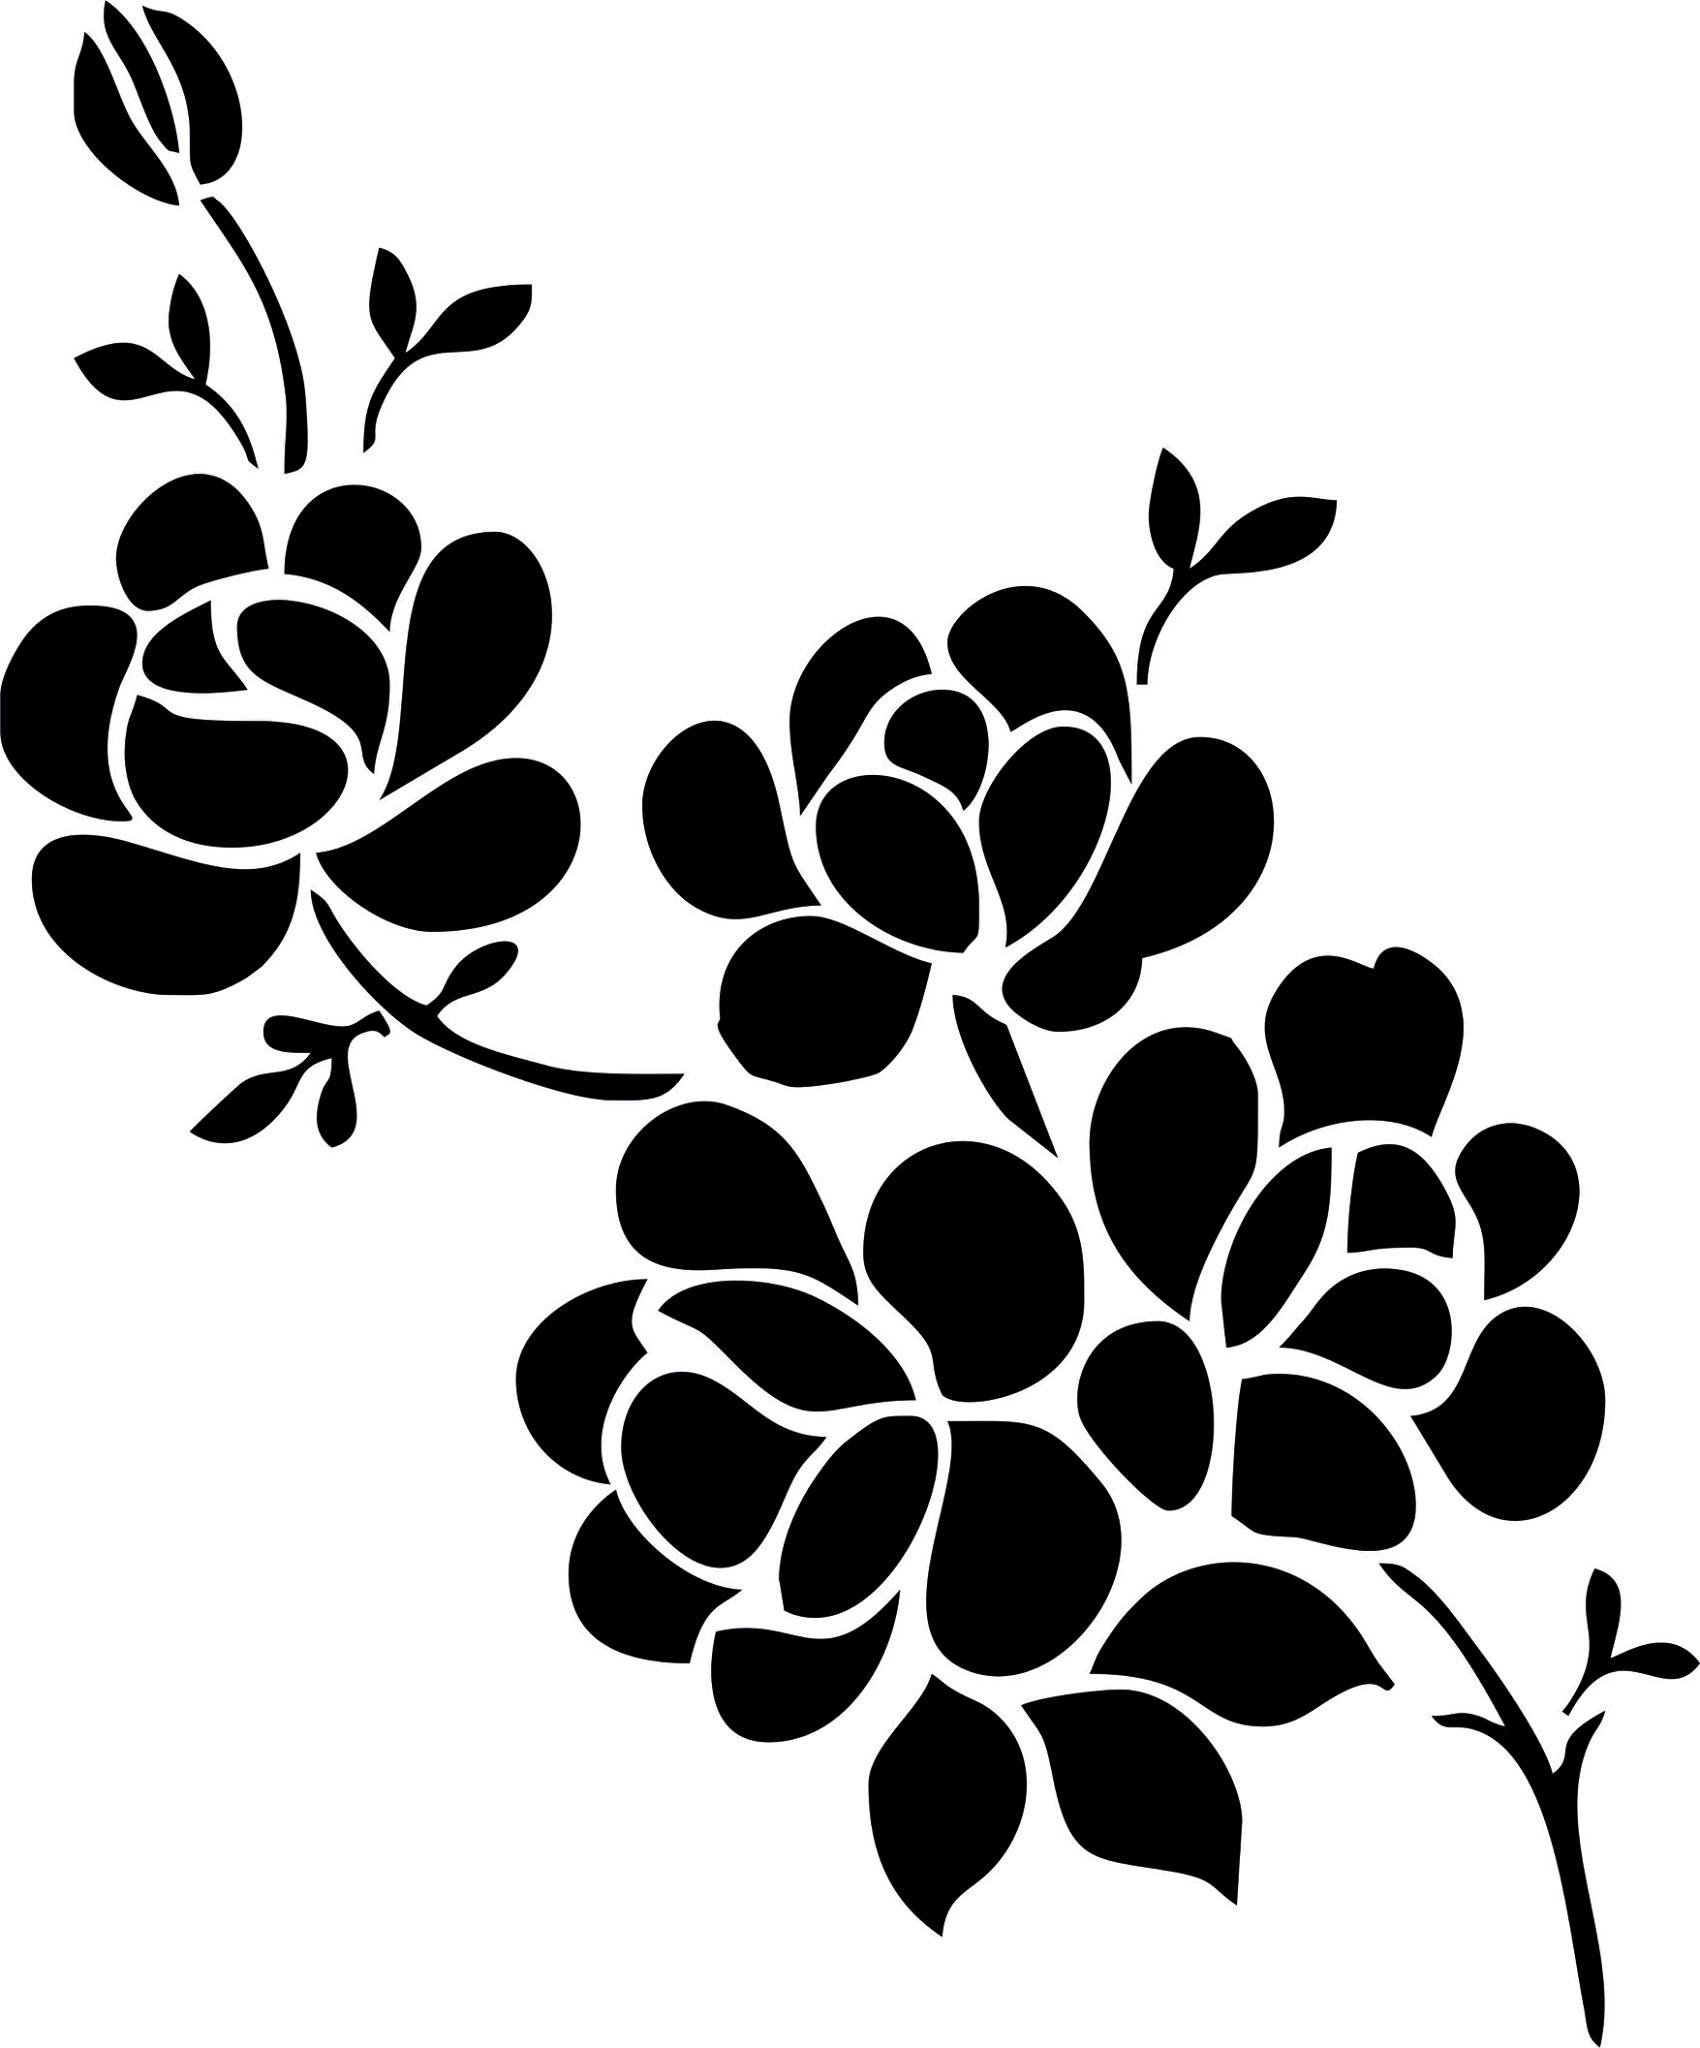 Elegant black and white flower vector art jpg image free download elegant black and white flower vector art jpg image free download 3axis mightylinksfo